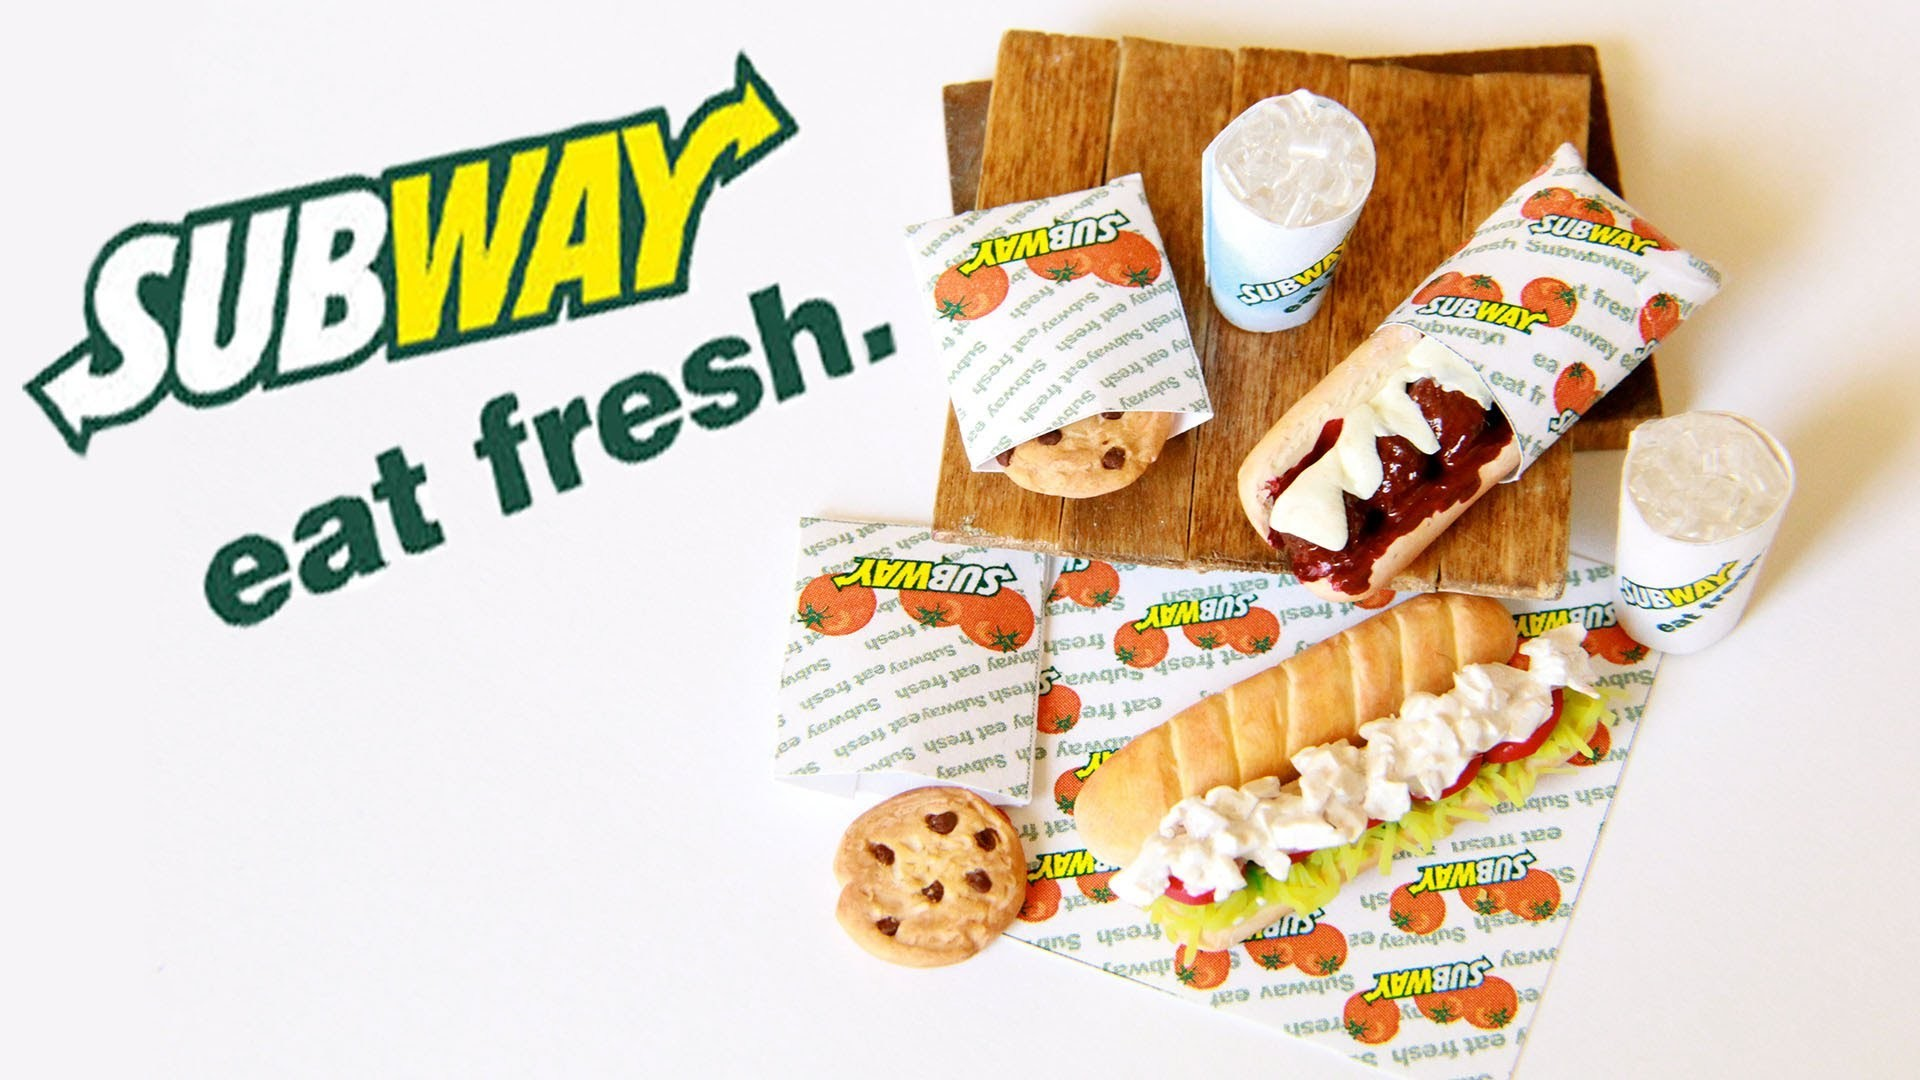 Subway Sandwiches : How To Make Sub Sandwiches, Cookies, and Drinks with Polymer Clay